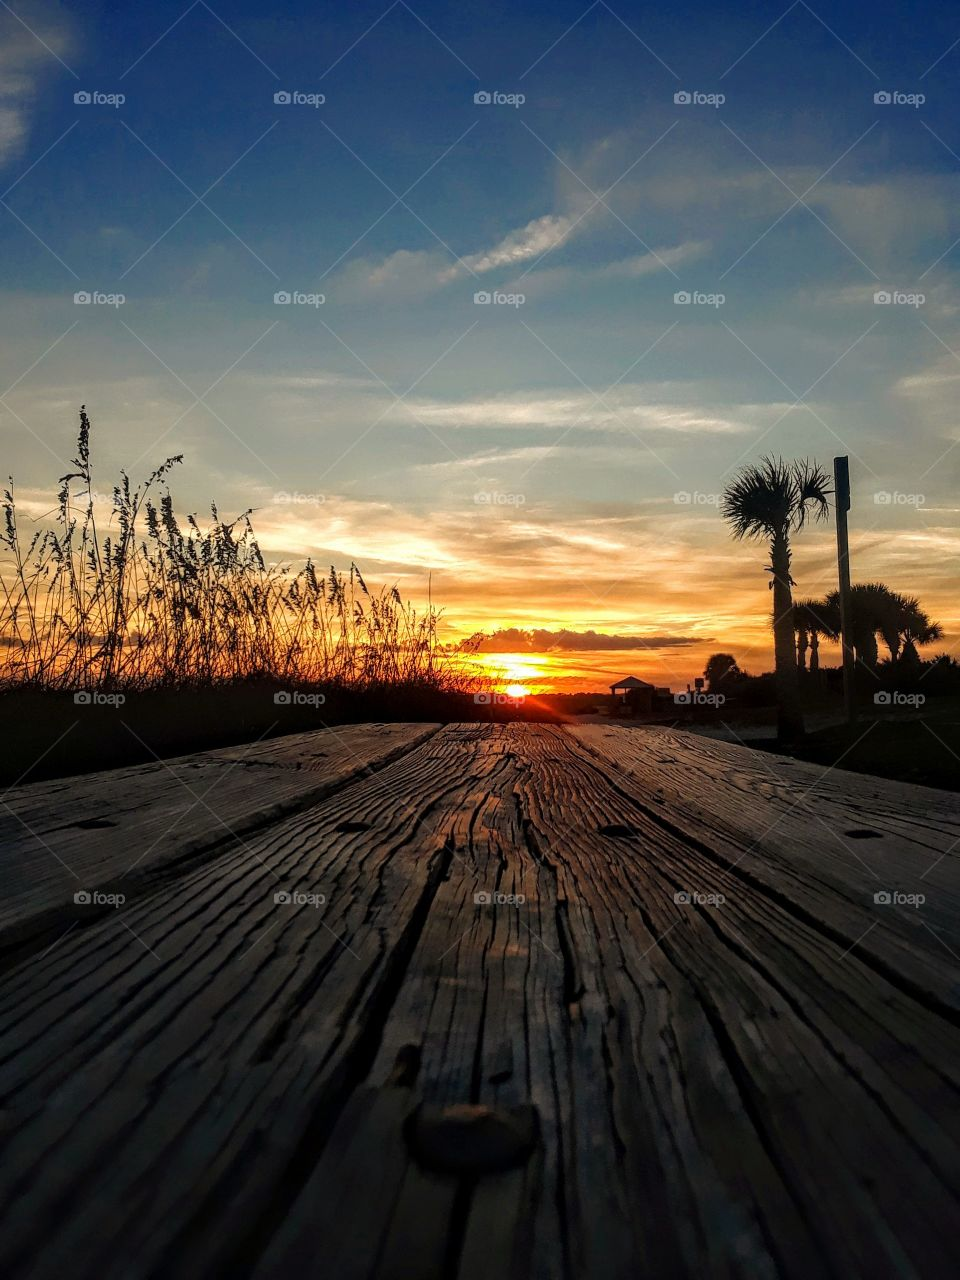 sunset view from wooden bench at Ponce Inlet,Florida